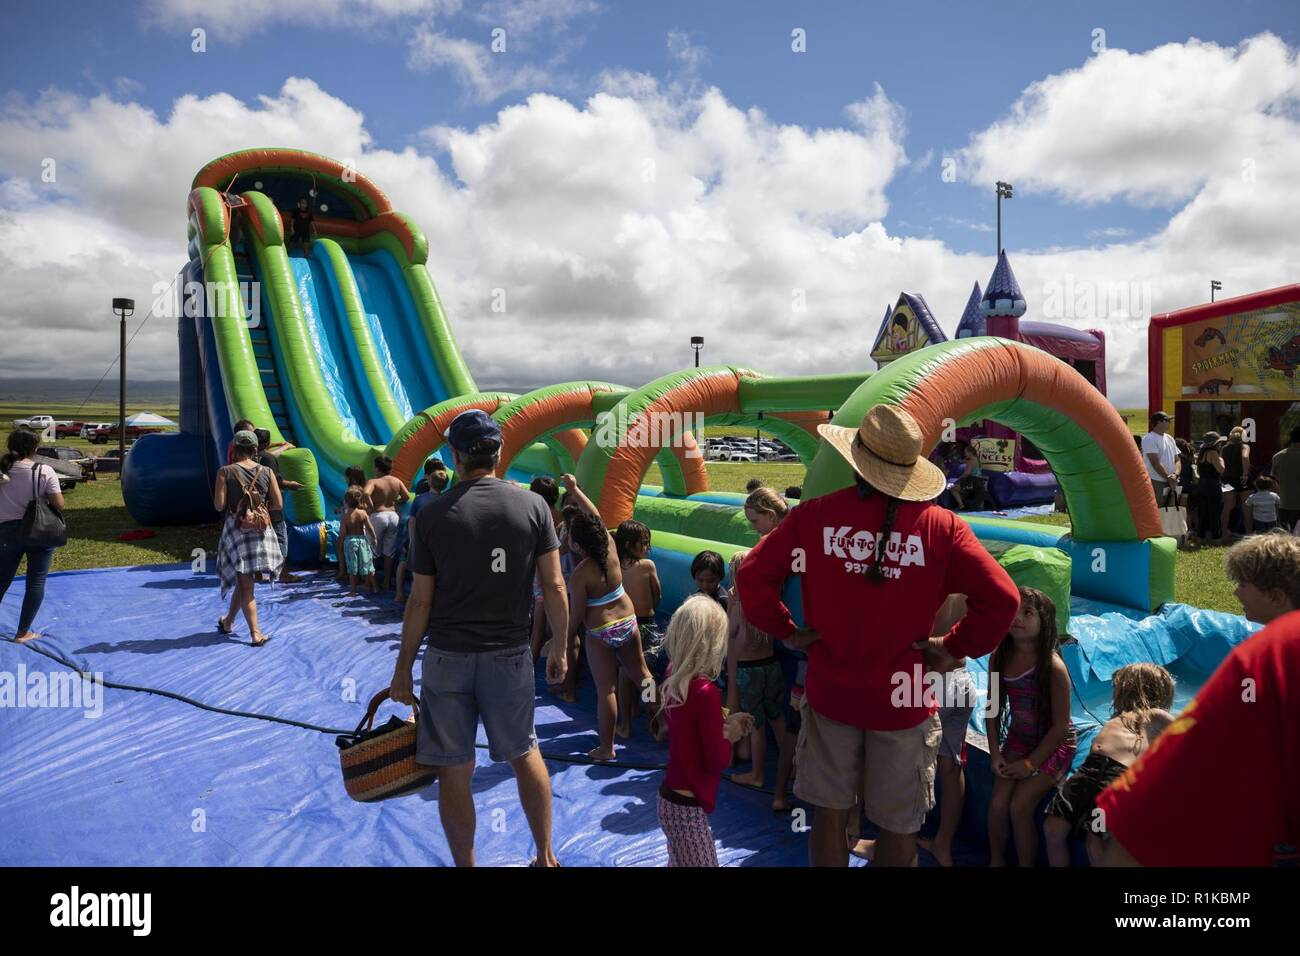 An infaltabble water slide is set up during the Waimea Fall Festival at the Waimea District Park, Oct. 13, 2018. U.S. Marines with Marine Medium Tiltrotor Squadron (VMM) 363, nicknamed the Lucky Red Lions, flew one of their aircraft from Marine Corps Base Hawaii on Oahu to the Waimea Fall Festival, providing a static display and subject matter experts for a first-hand experience to the festival's attendants. The squadron arrived to Hawaii earlier this year increasing the combat capability and crisis response within the Indo-Pacific region. Stock Photo